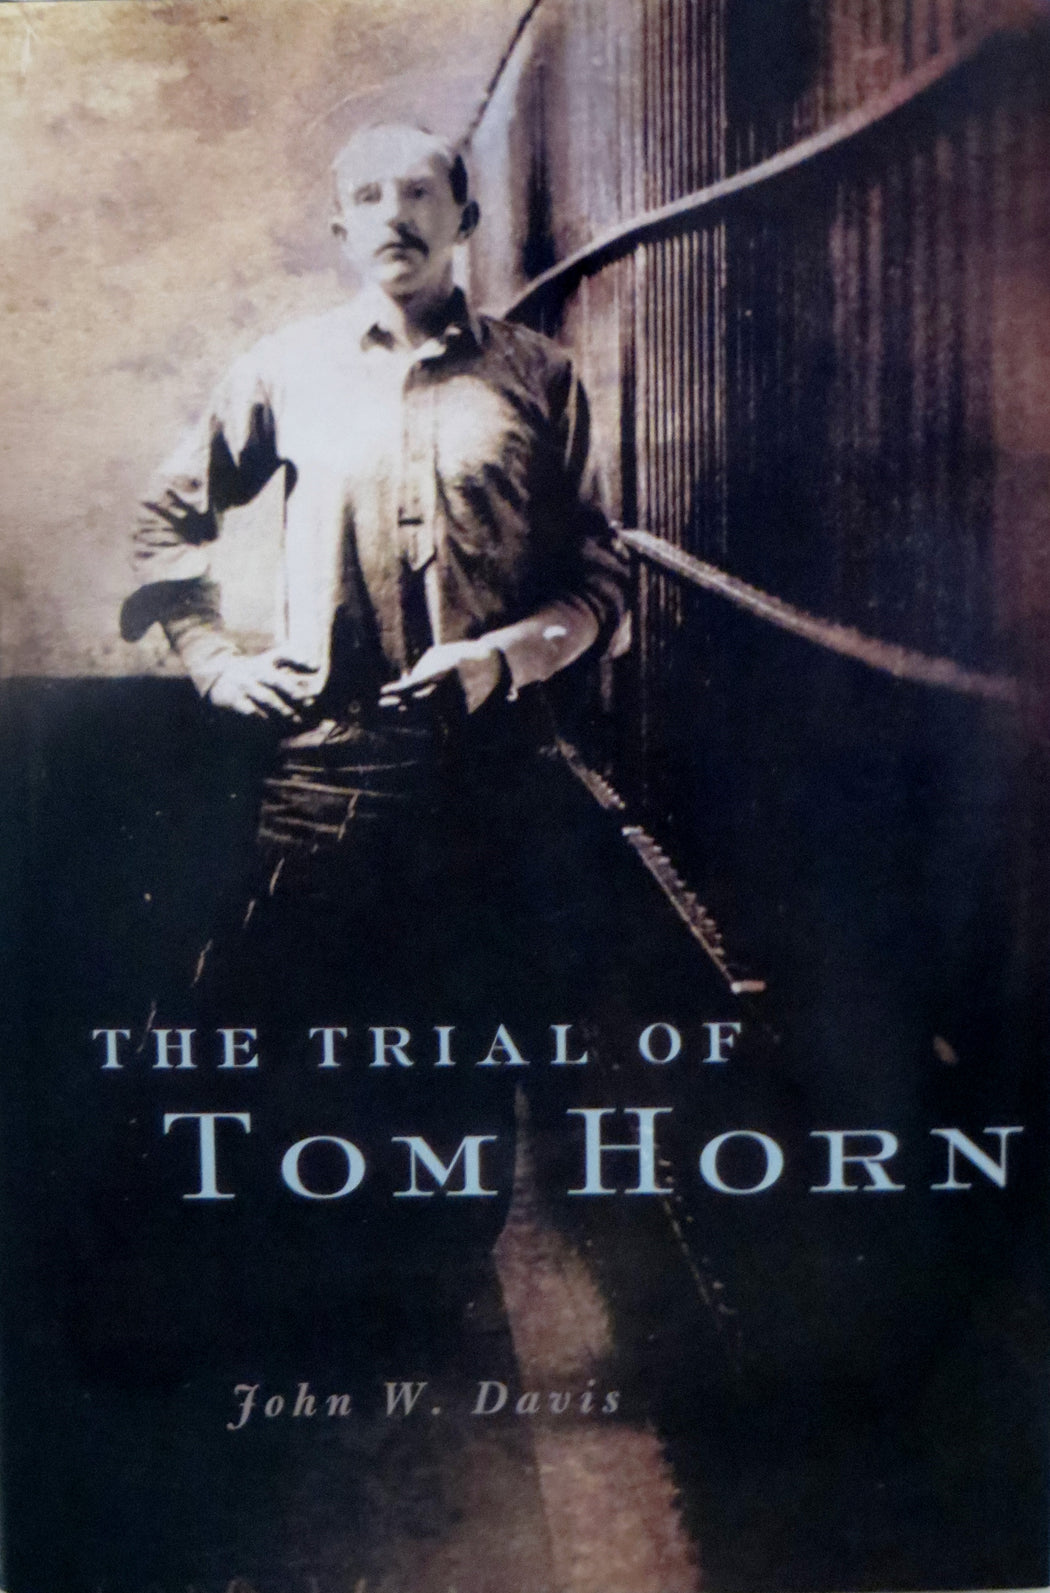 The Trial of Tom Horn